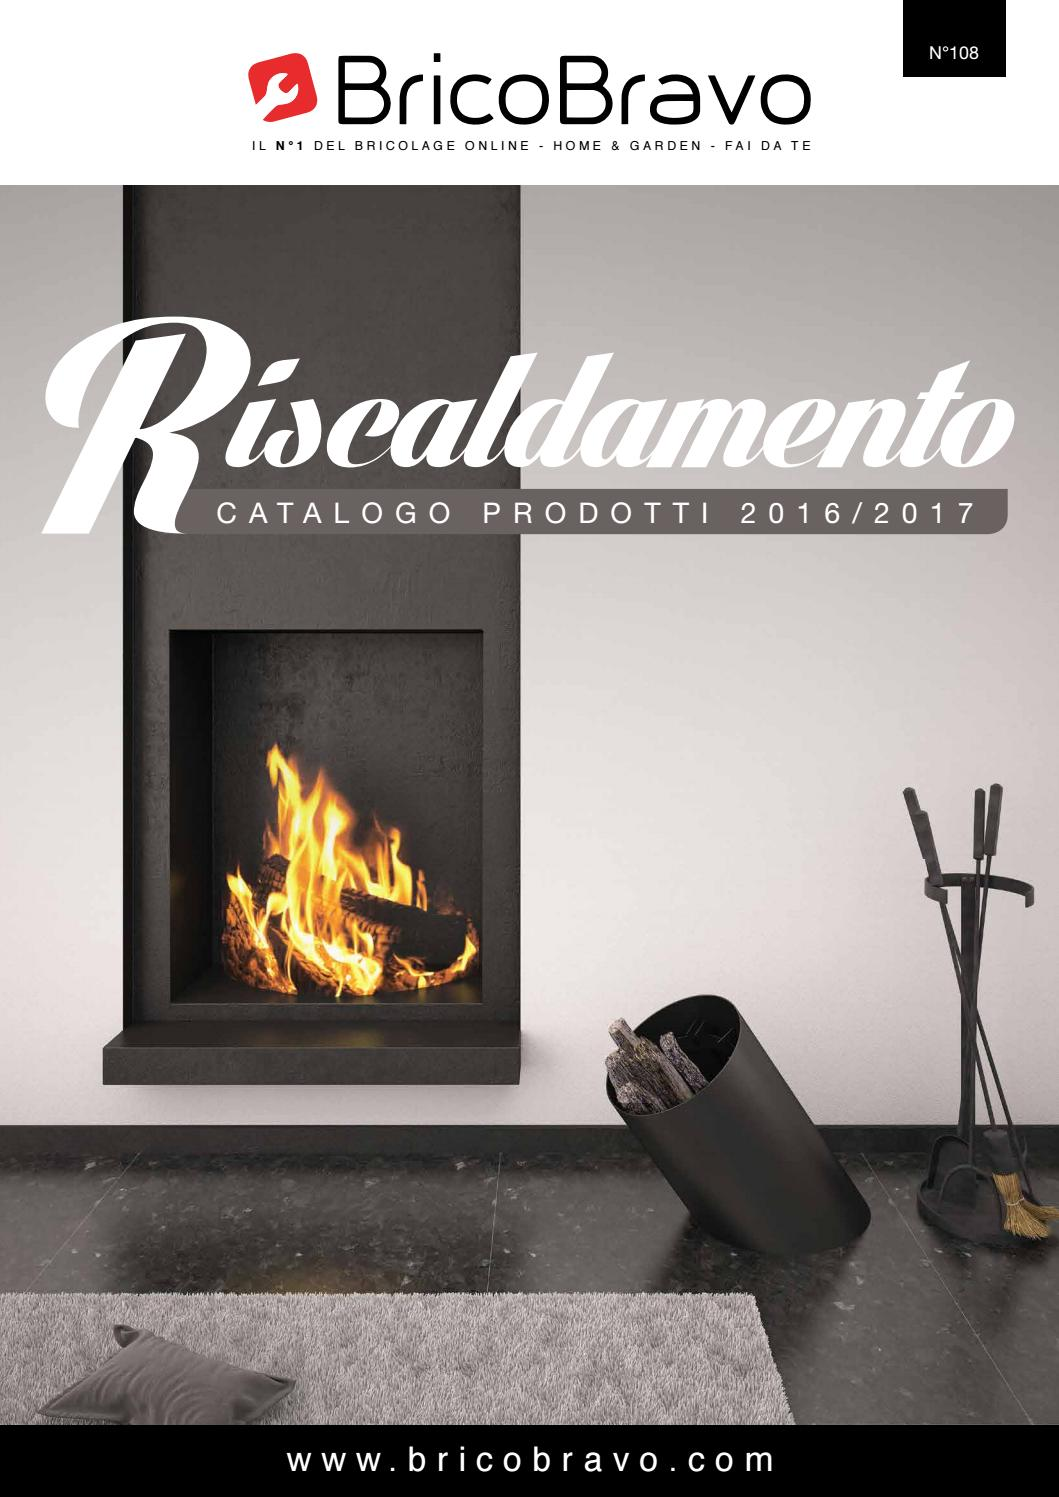 Brico bravo catalogo riscaldamento 2017 by brico bravo issuu for Brico bravo stufe bioetanolo